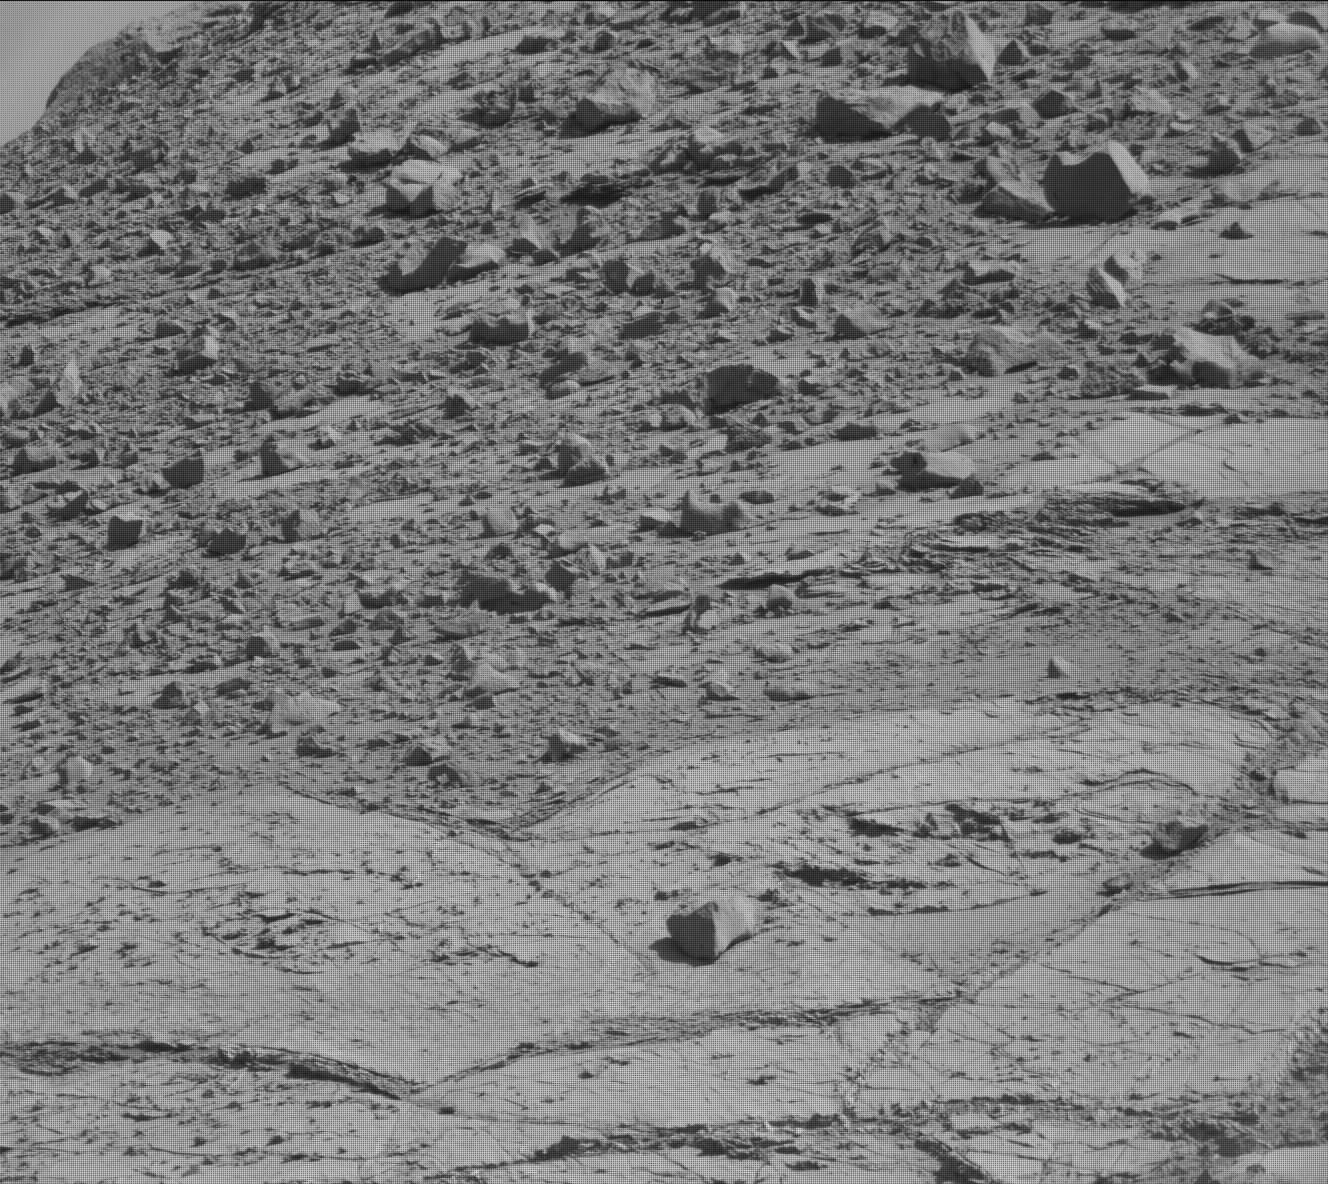 Nasa's Mars rover Curiosity acquired this image using its Mast Camera (Mastcam) on Sol 2620